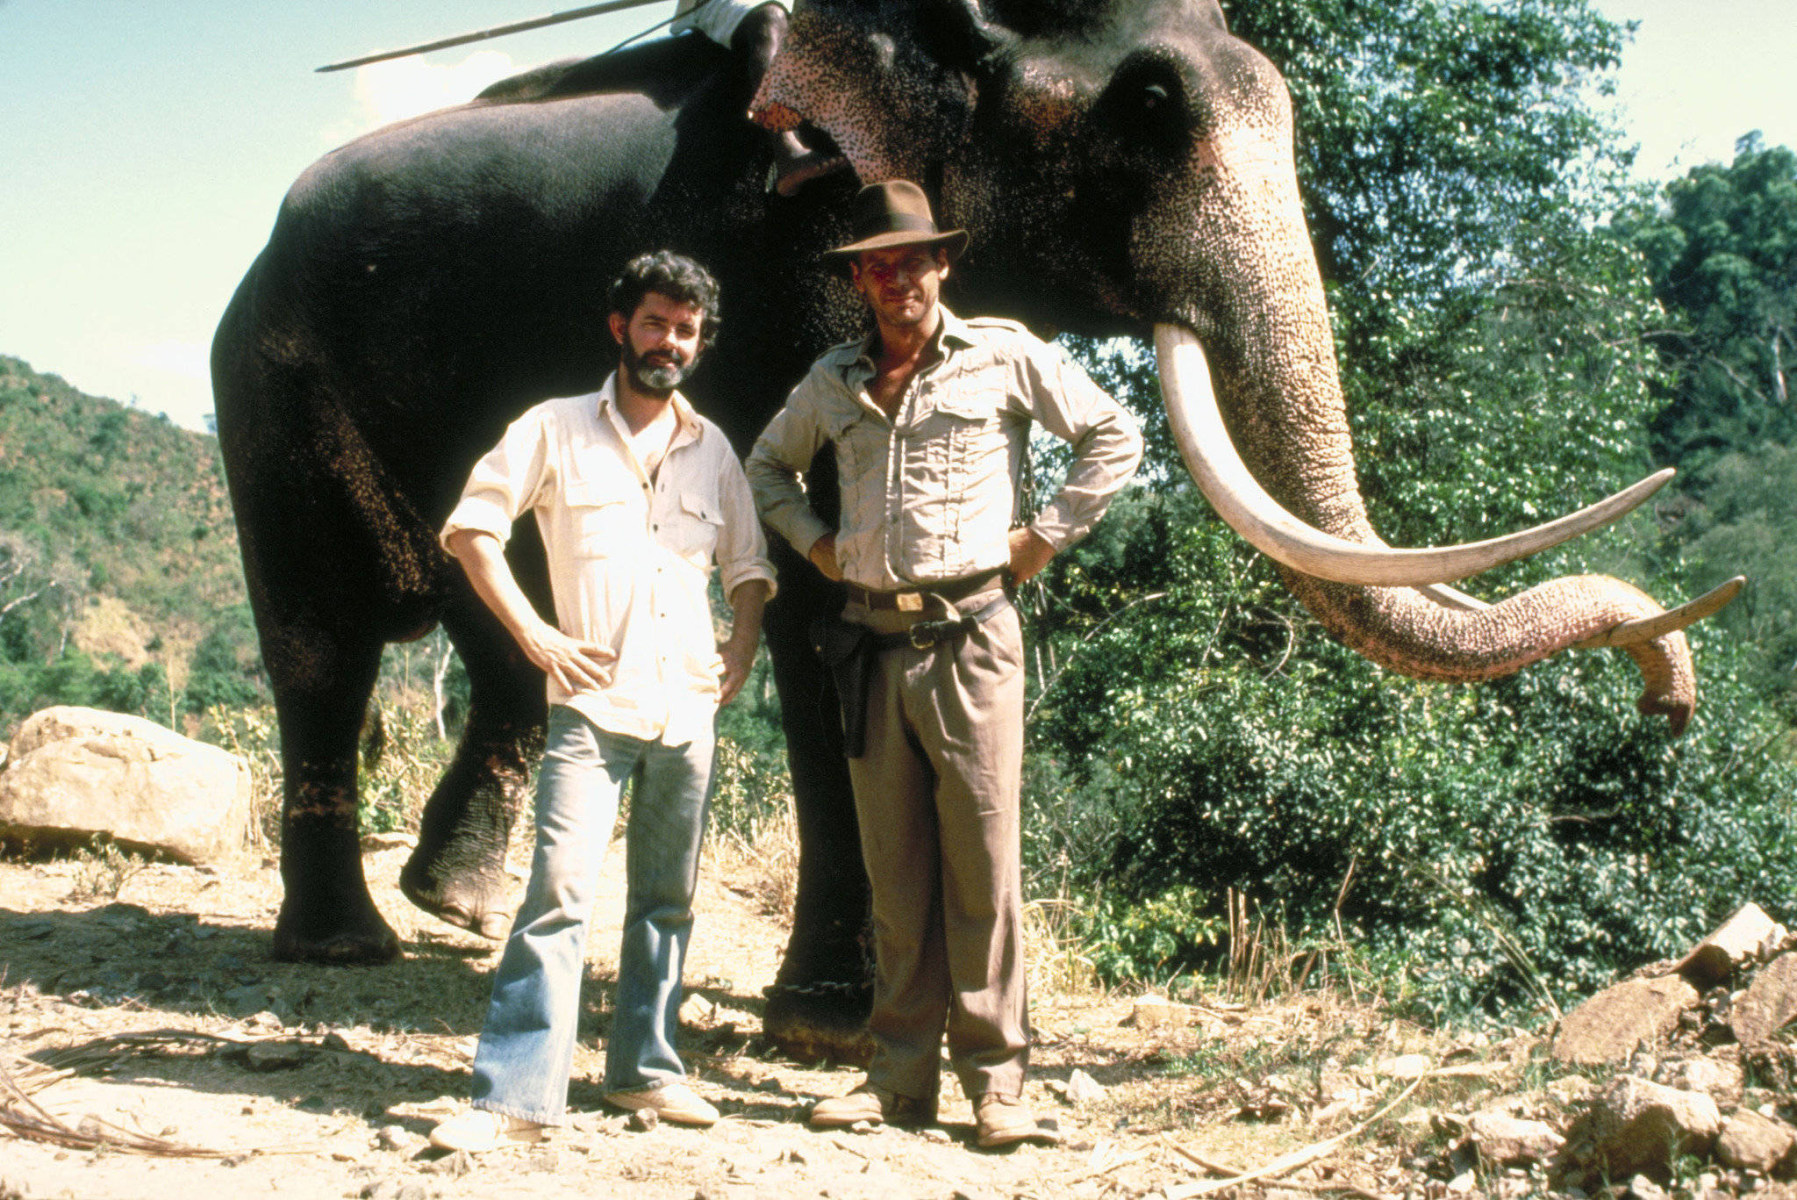 Indiana Jones and the Temple of Doom Behind the Scenes Photos & Tech Specs